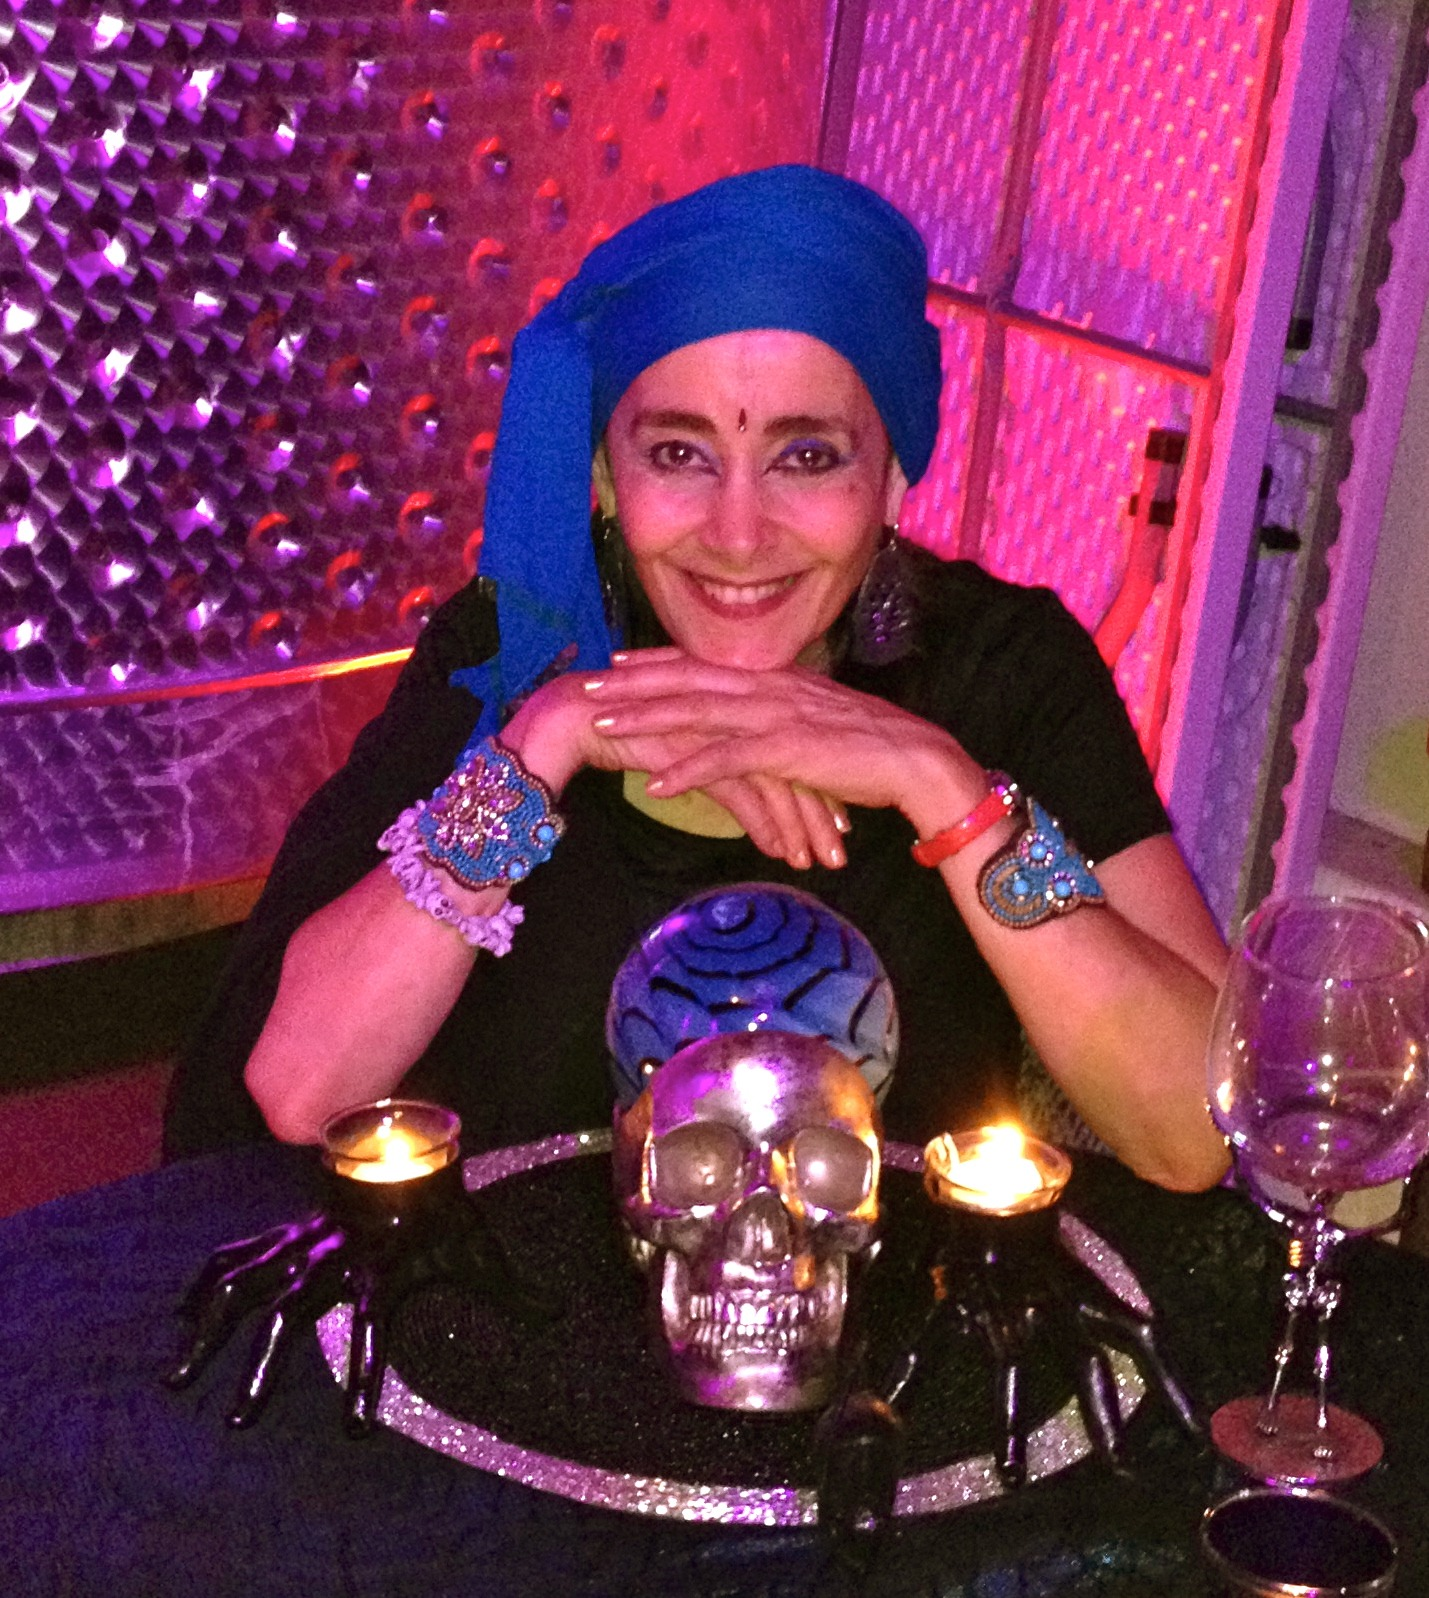 Female psychic with a blue turban posing for her fortune telling